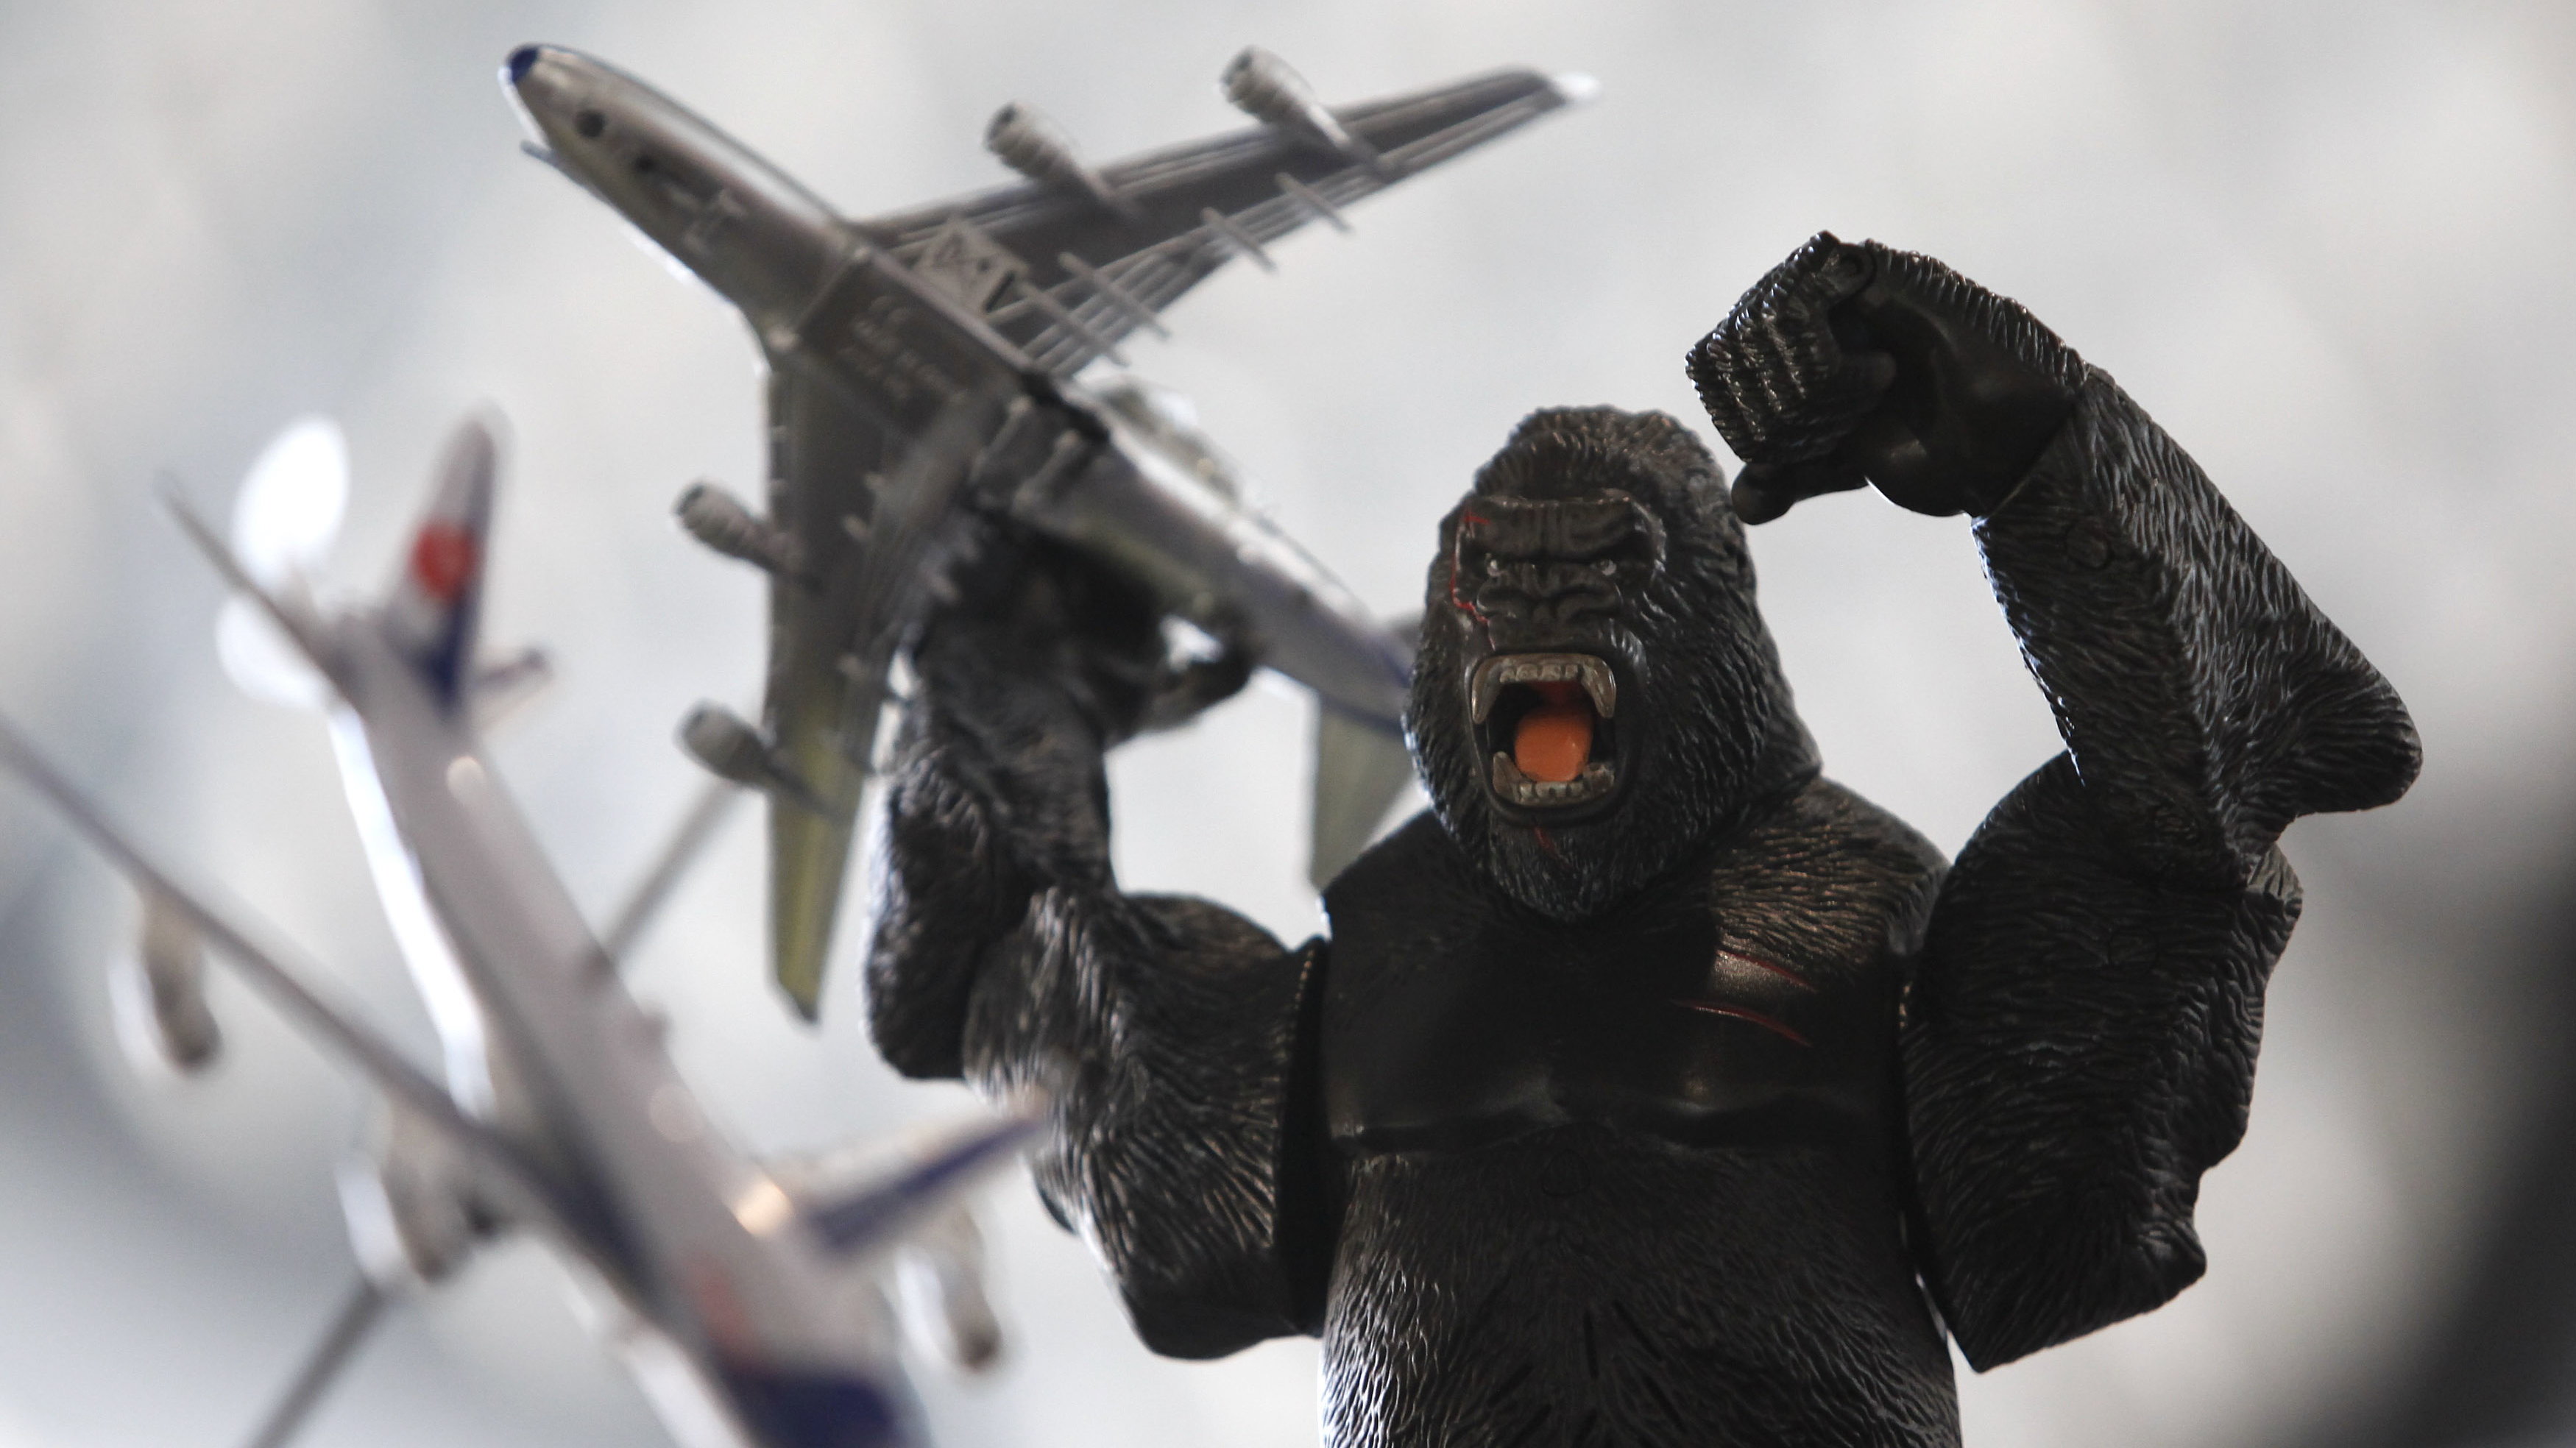 king kong with airplanes